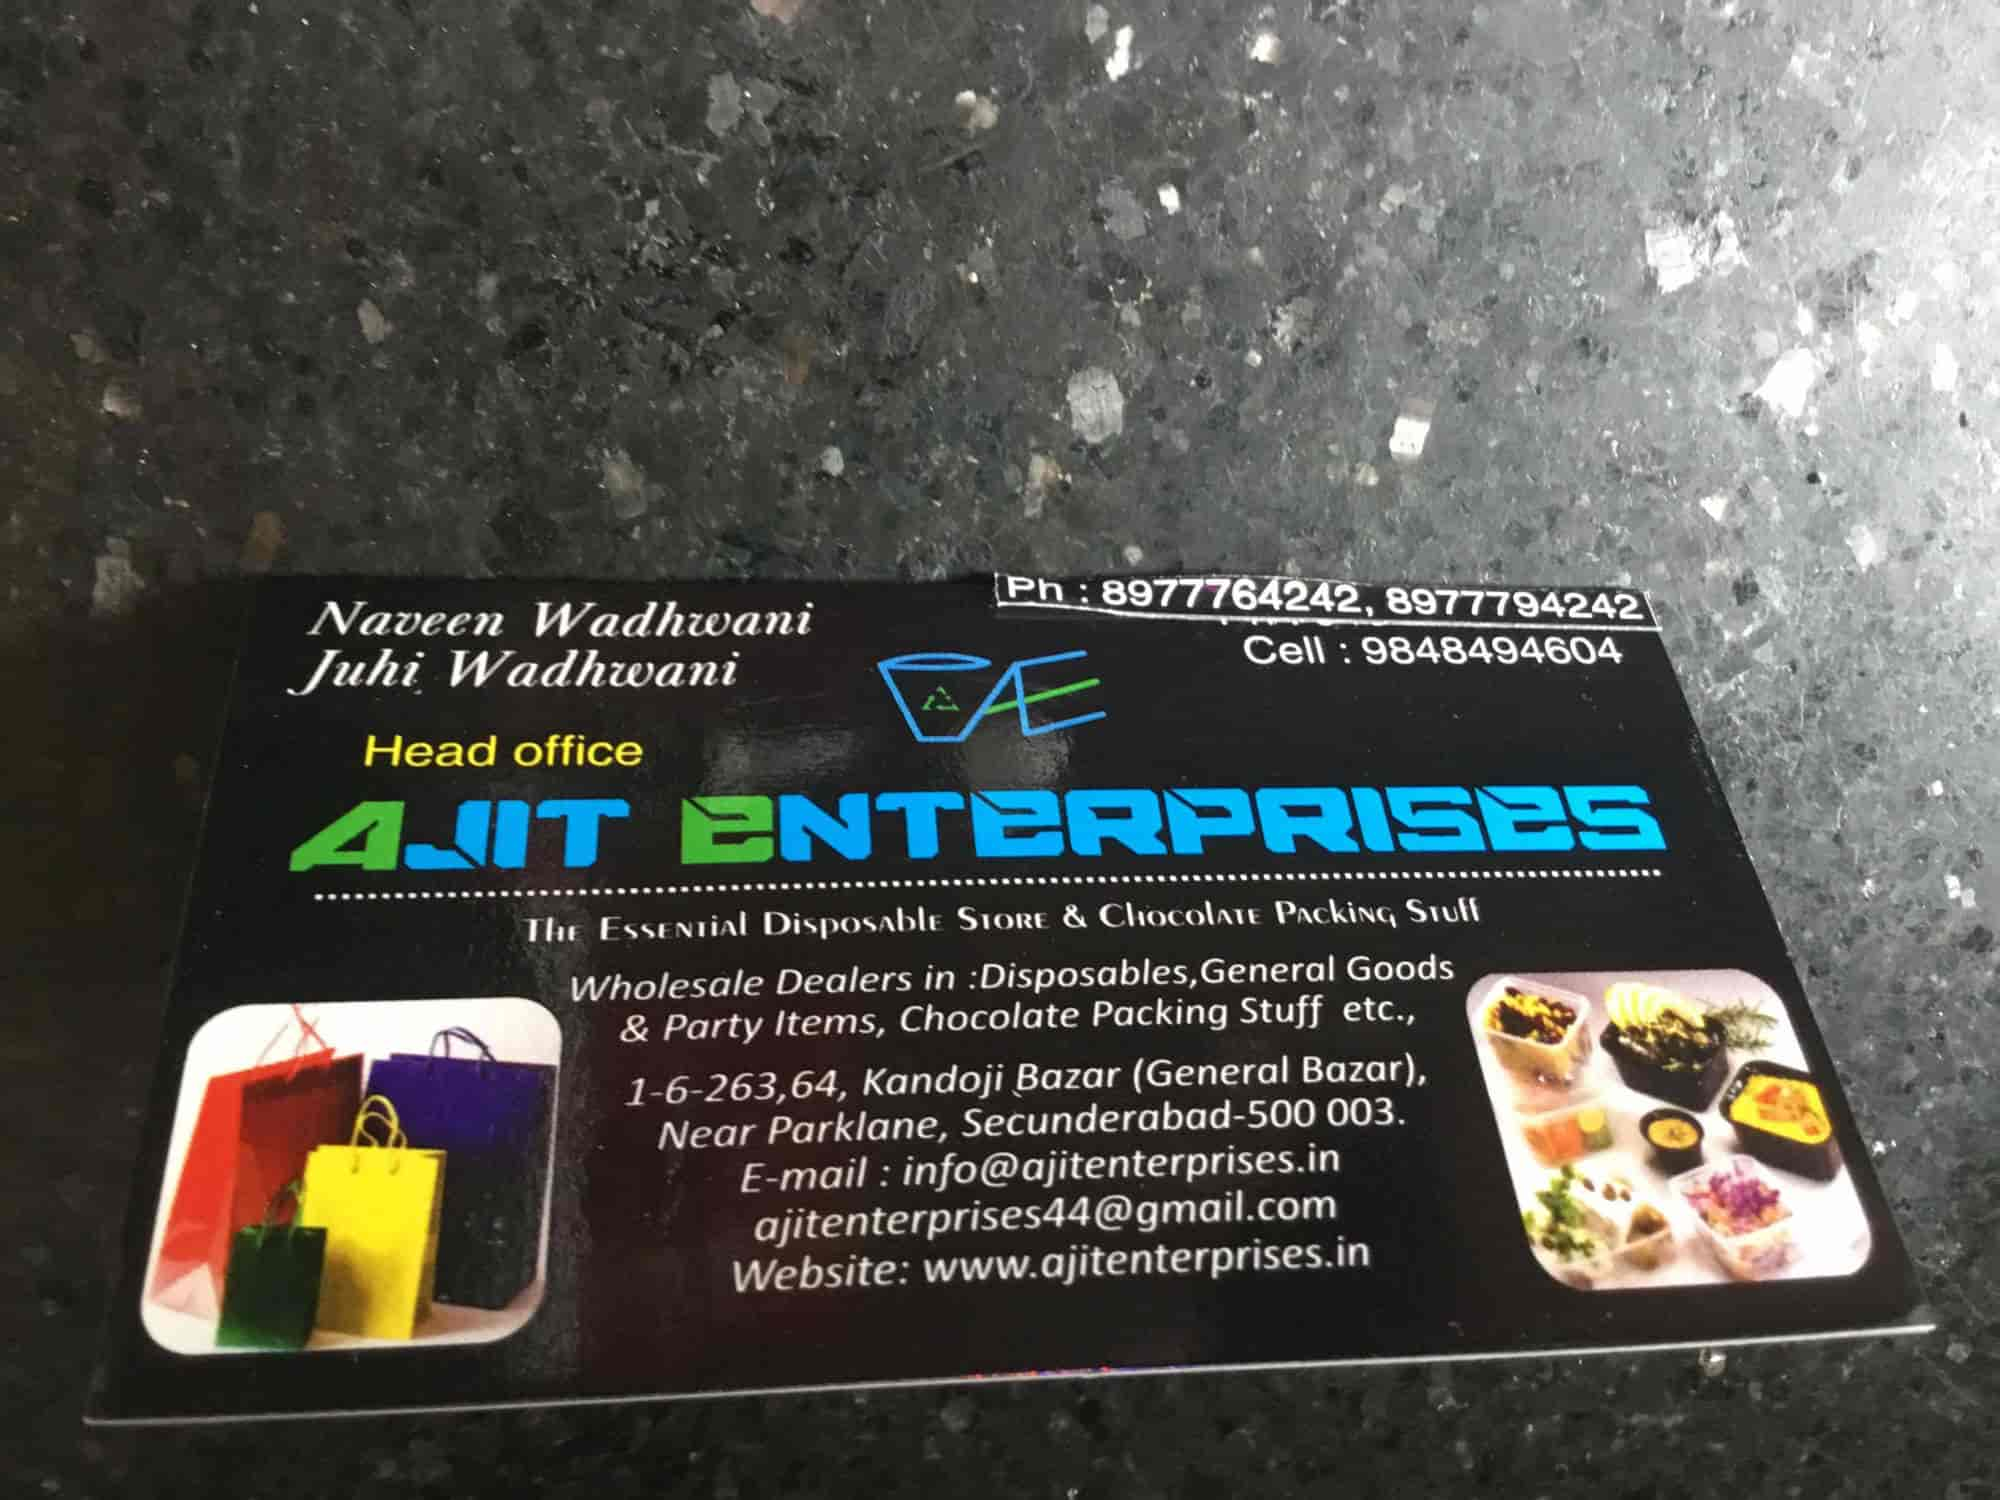 wedding cards in hyderabad general bazar%0A Ajit Enterprises  Secunderabad  Ajit Enterpries  Paper Product Dealers in  Hyderabad  Justdial